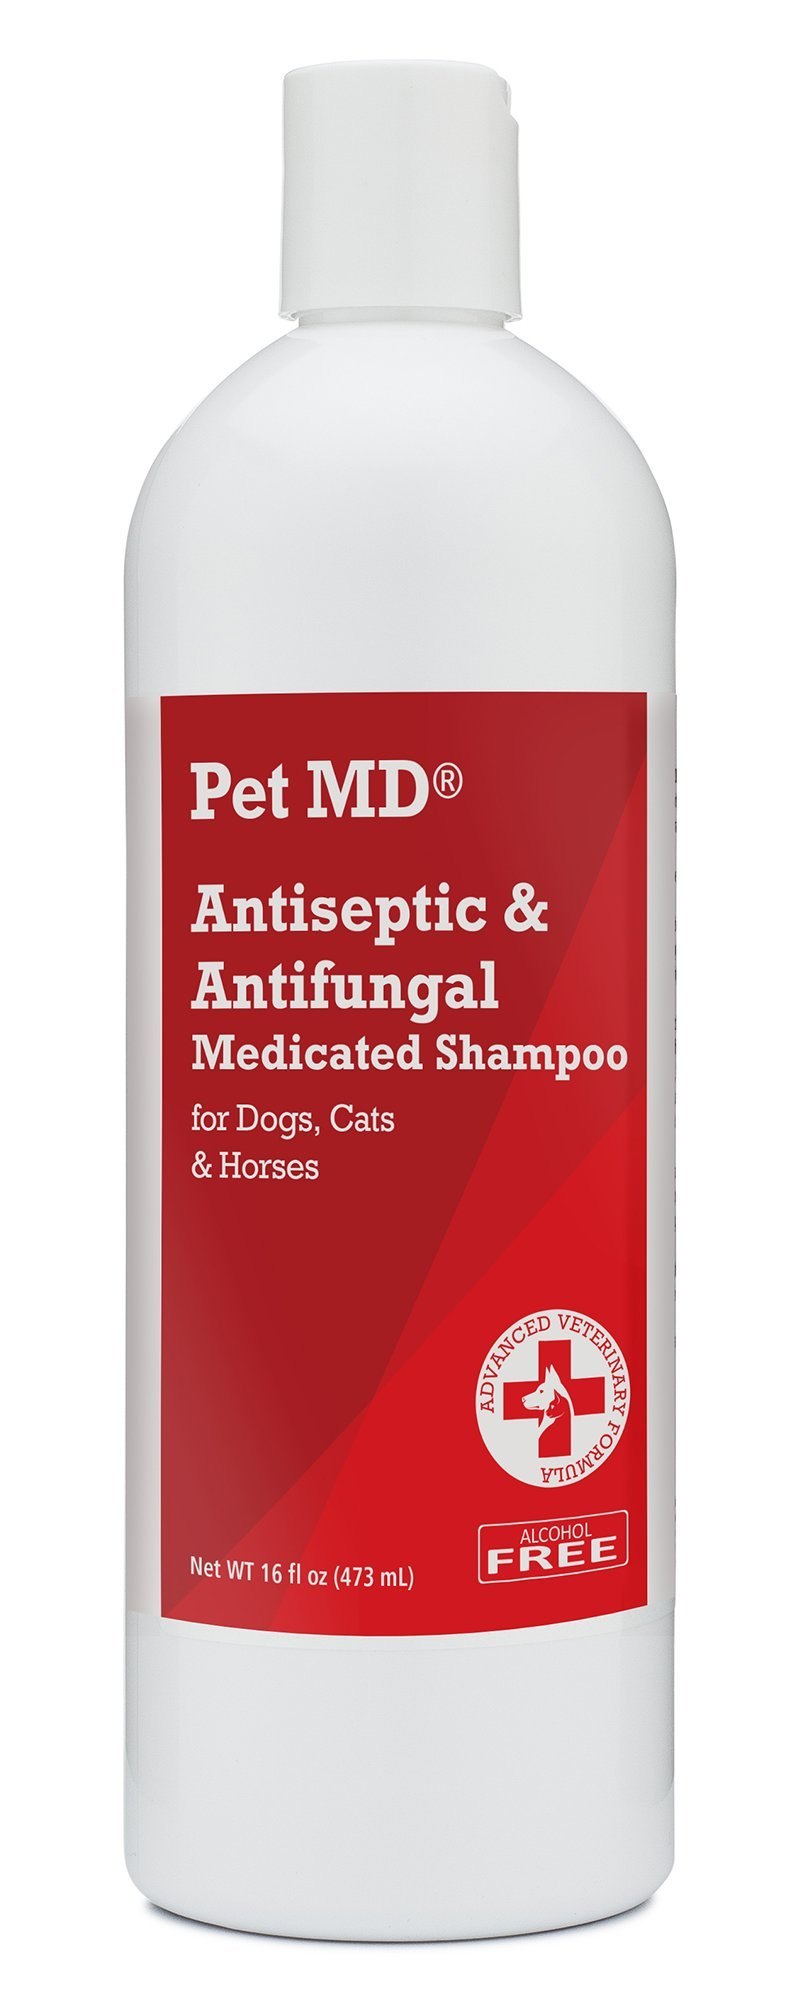 Pet MD - Medicated Shampoo for Dogs, Cats and Horses with Chlorhexidine and Ketoconazole - Soap and Paraben Free - 16 Oz